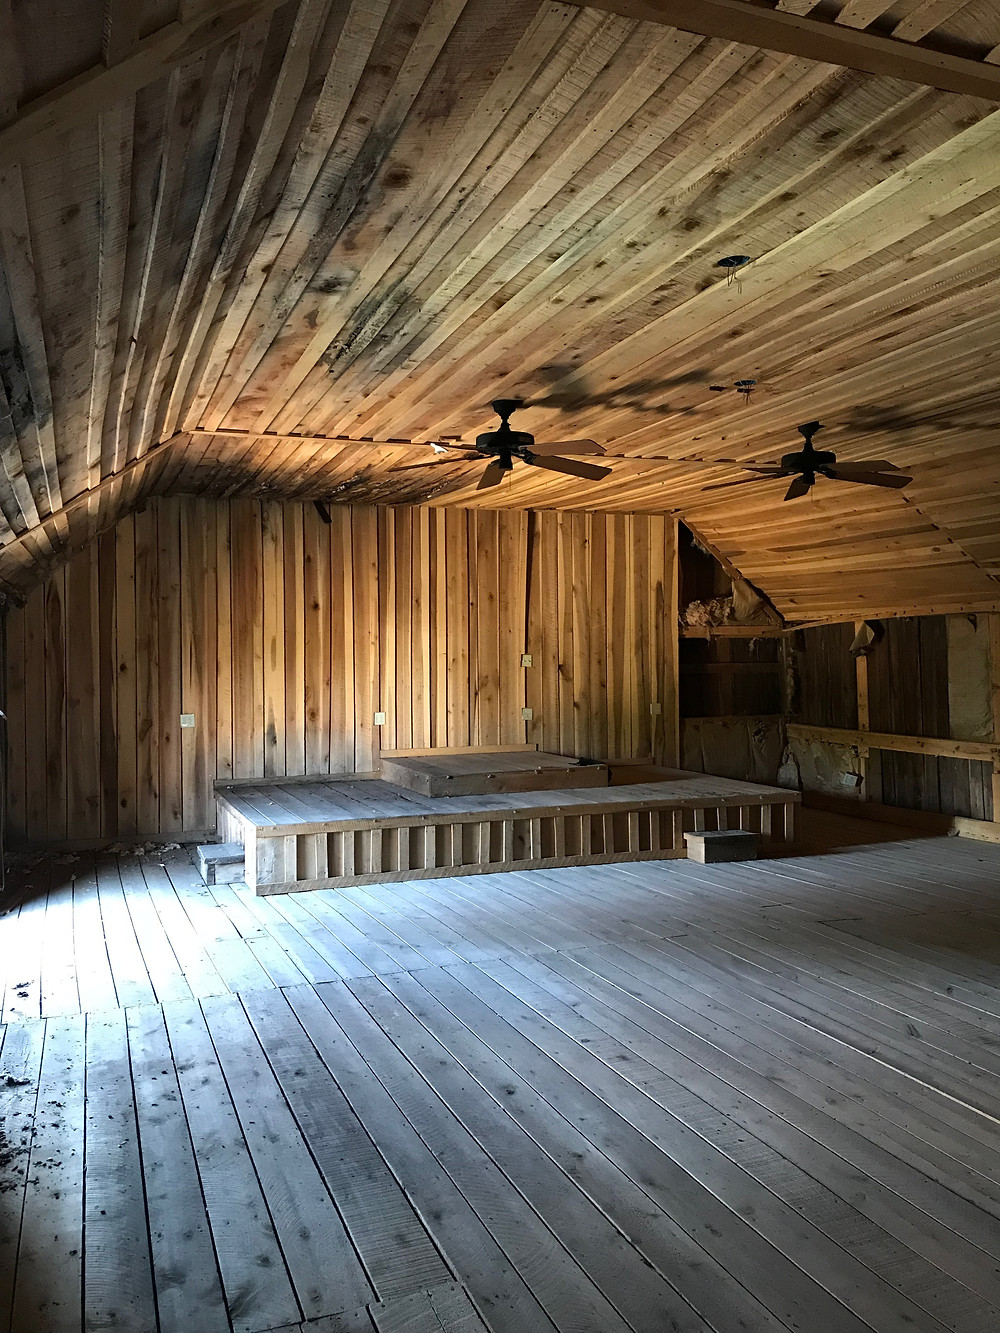 Upstairs in the barn, ready for restoration for use as a worship center.